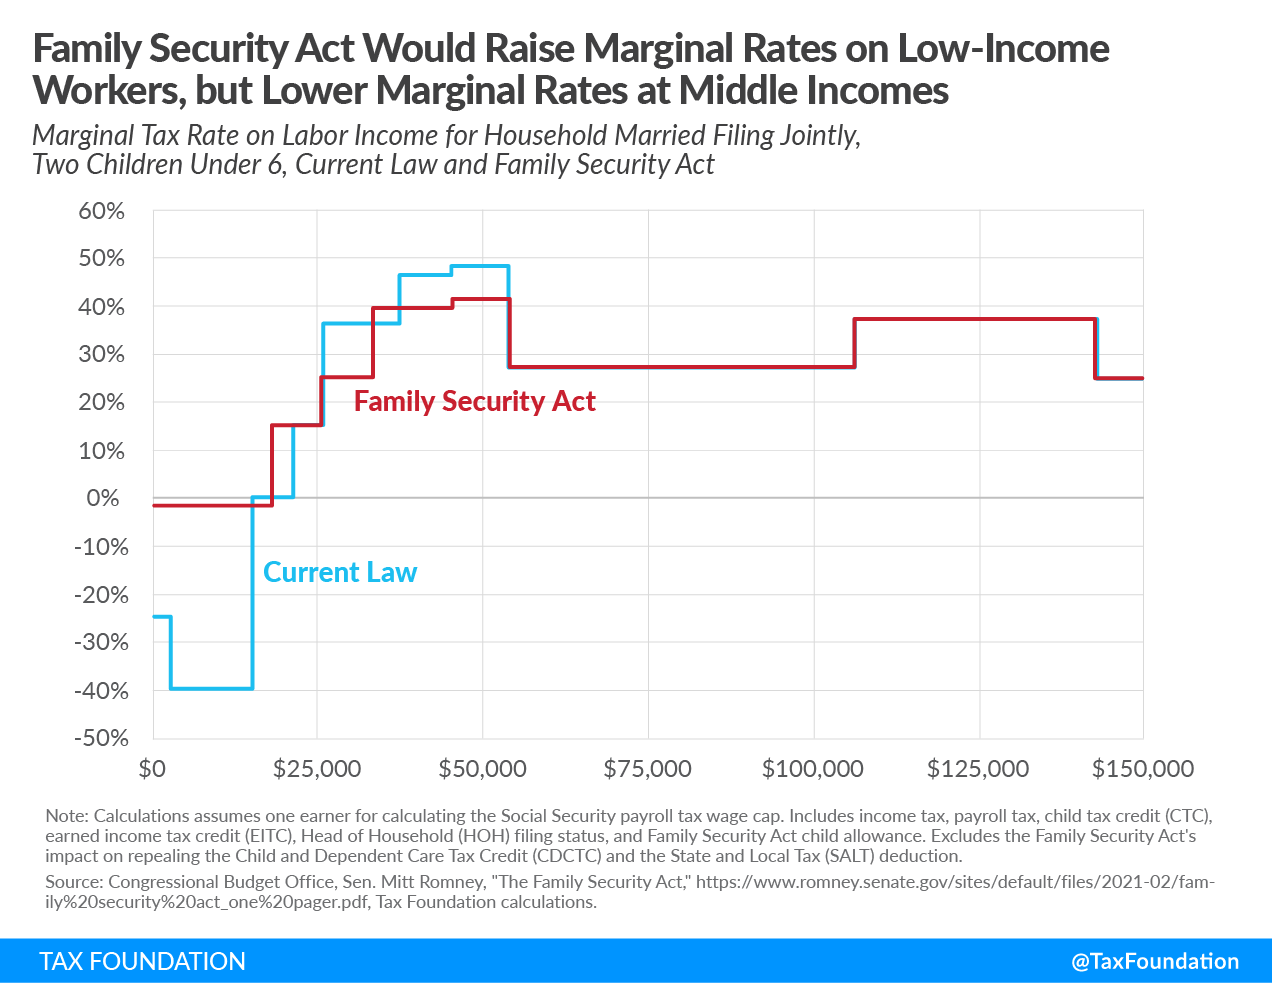 Mitt Romney Family Security Act Would raise marginal rates on low-income workers, but lower marginal rates at higher incomes. Mitt Romney Child Tax Allowance